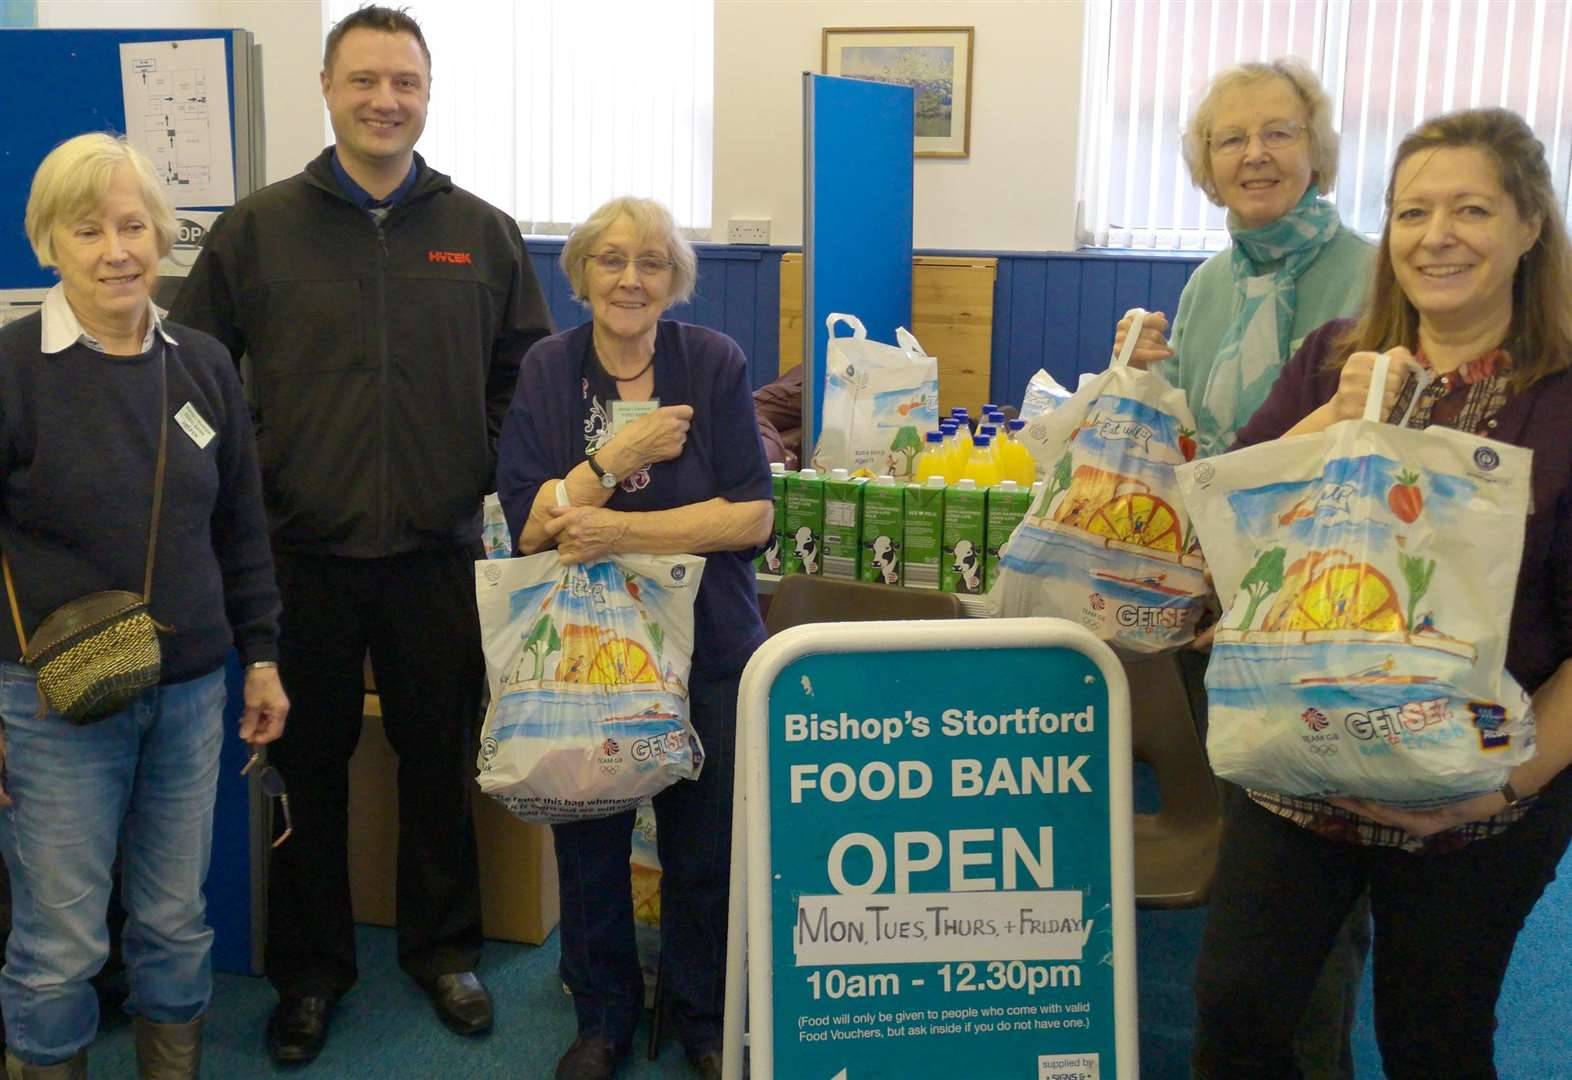 Festive boost for town's food bank